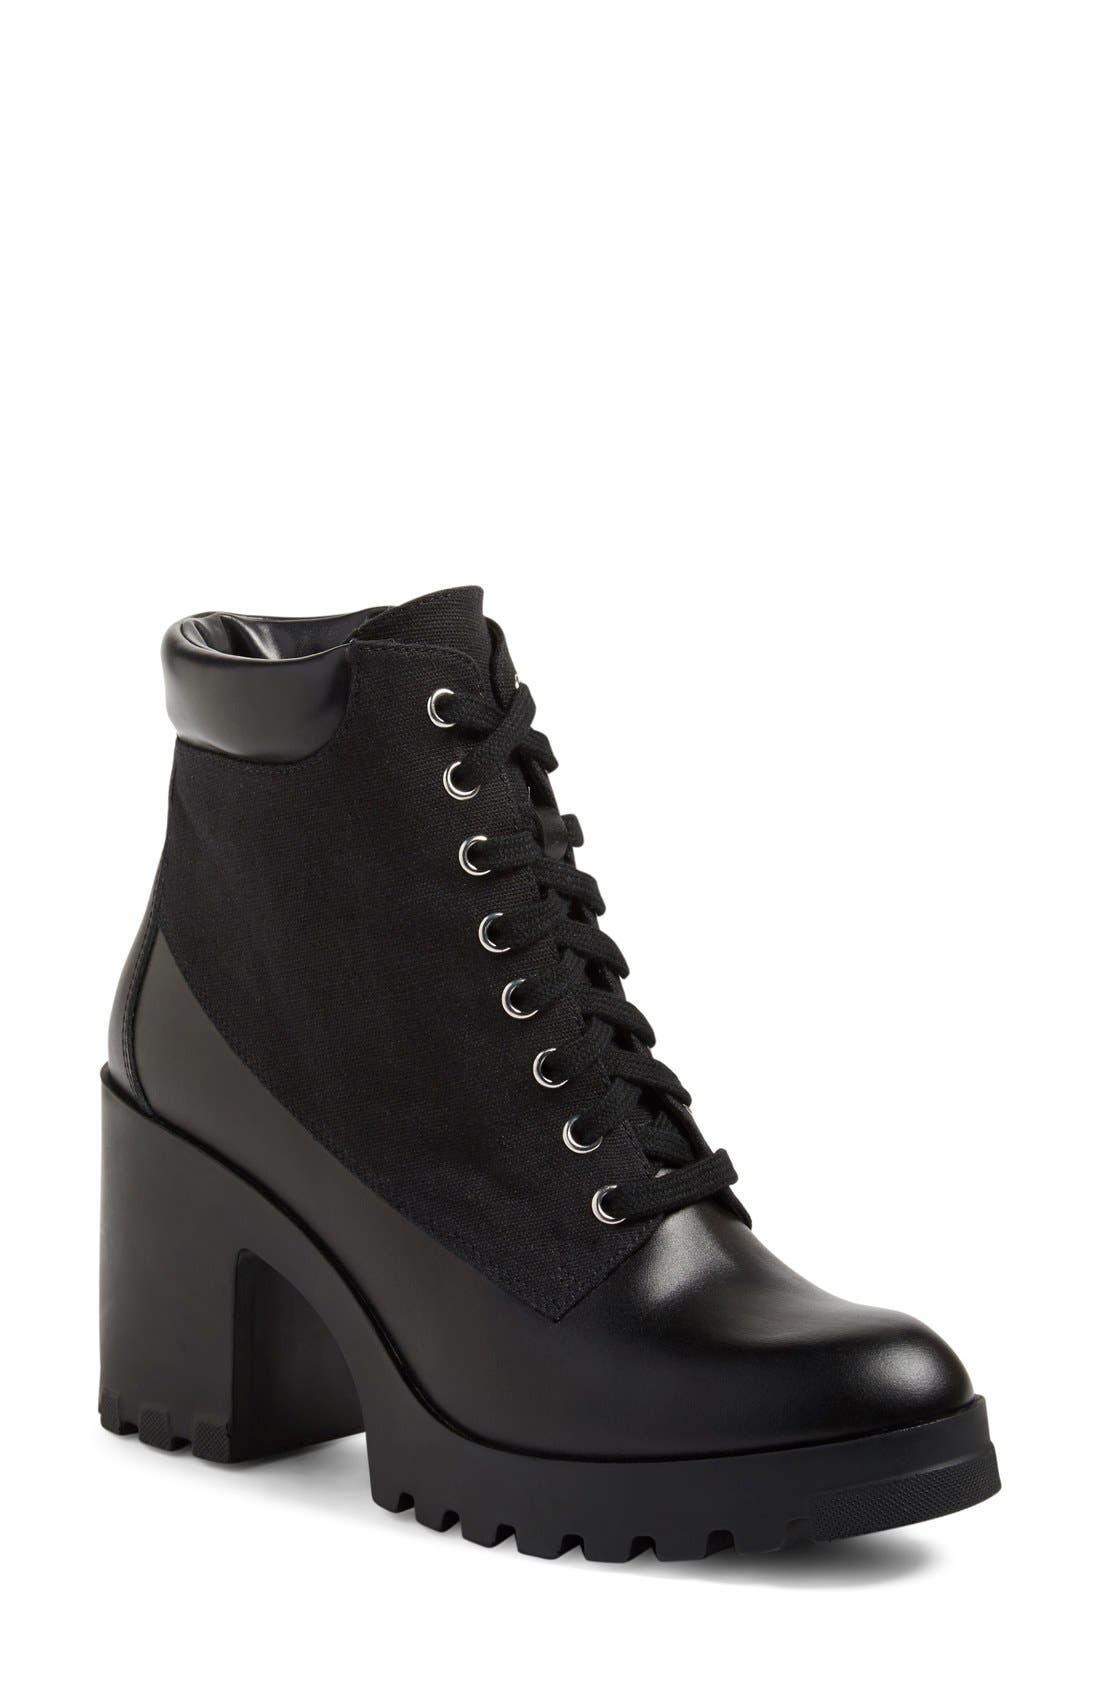 Alternate Image 1 Selected - BP. Madison Lace-Up Boot (Women)